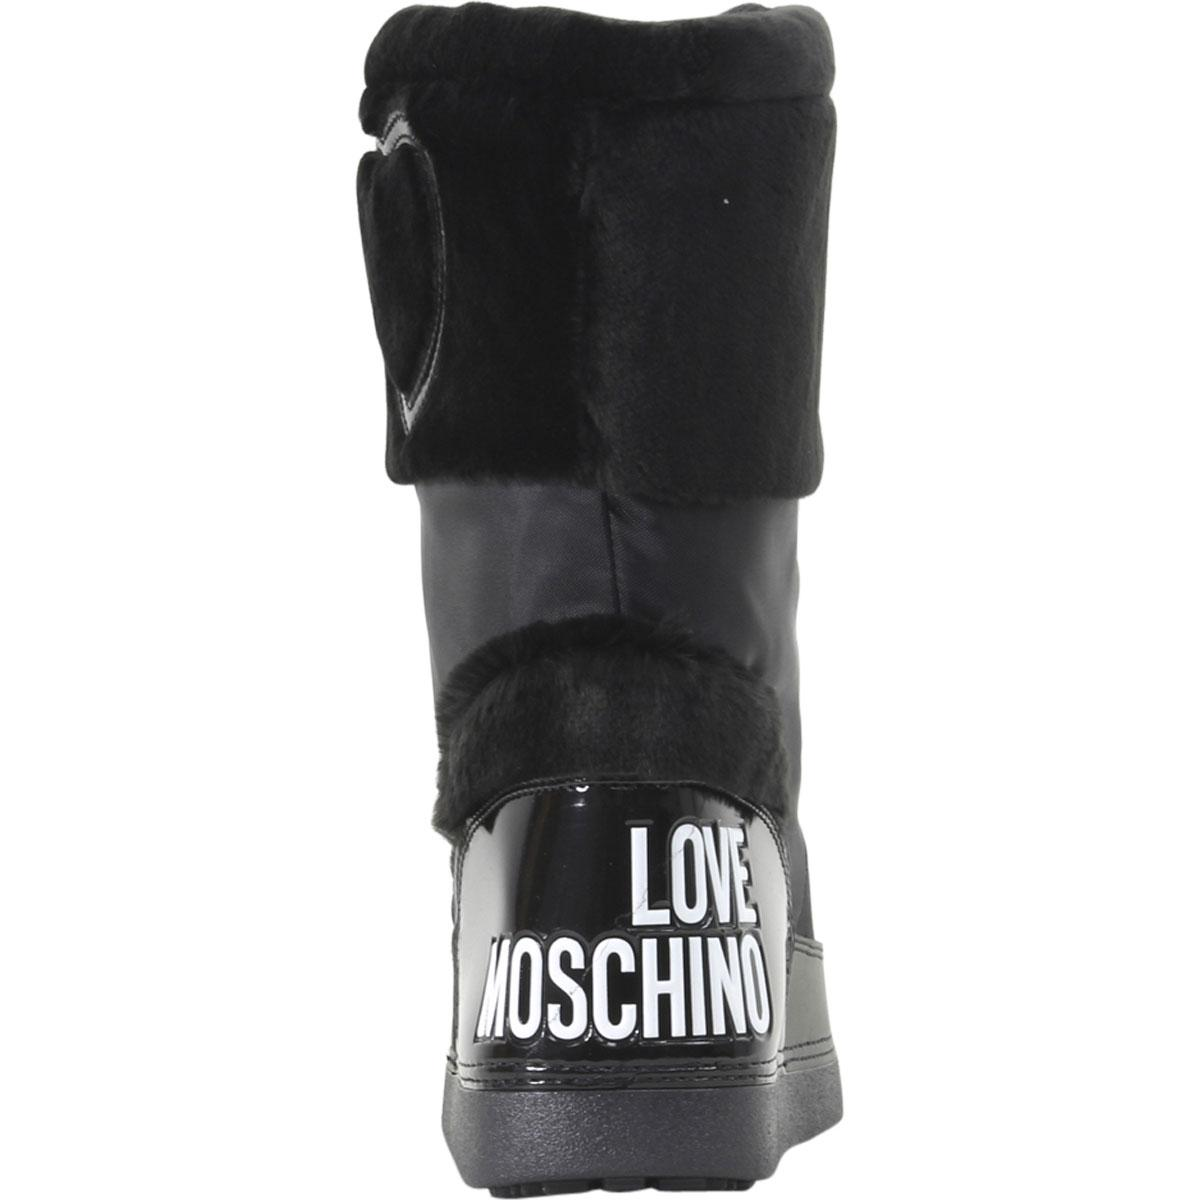 best sell newest style of order online Love Moschino Women's Heart Winter Snow Boots Shoes